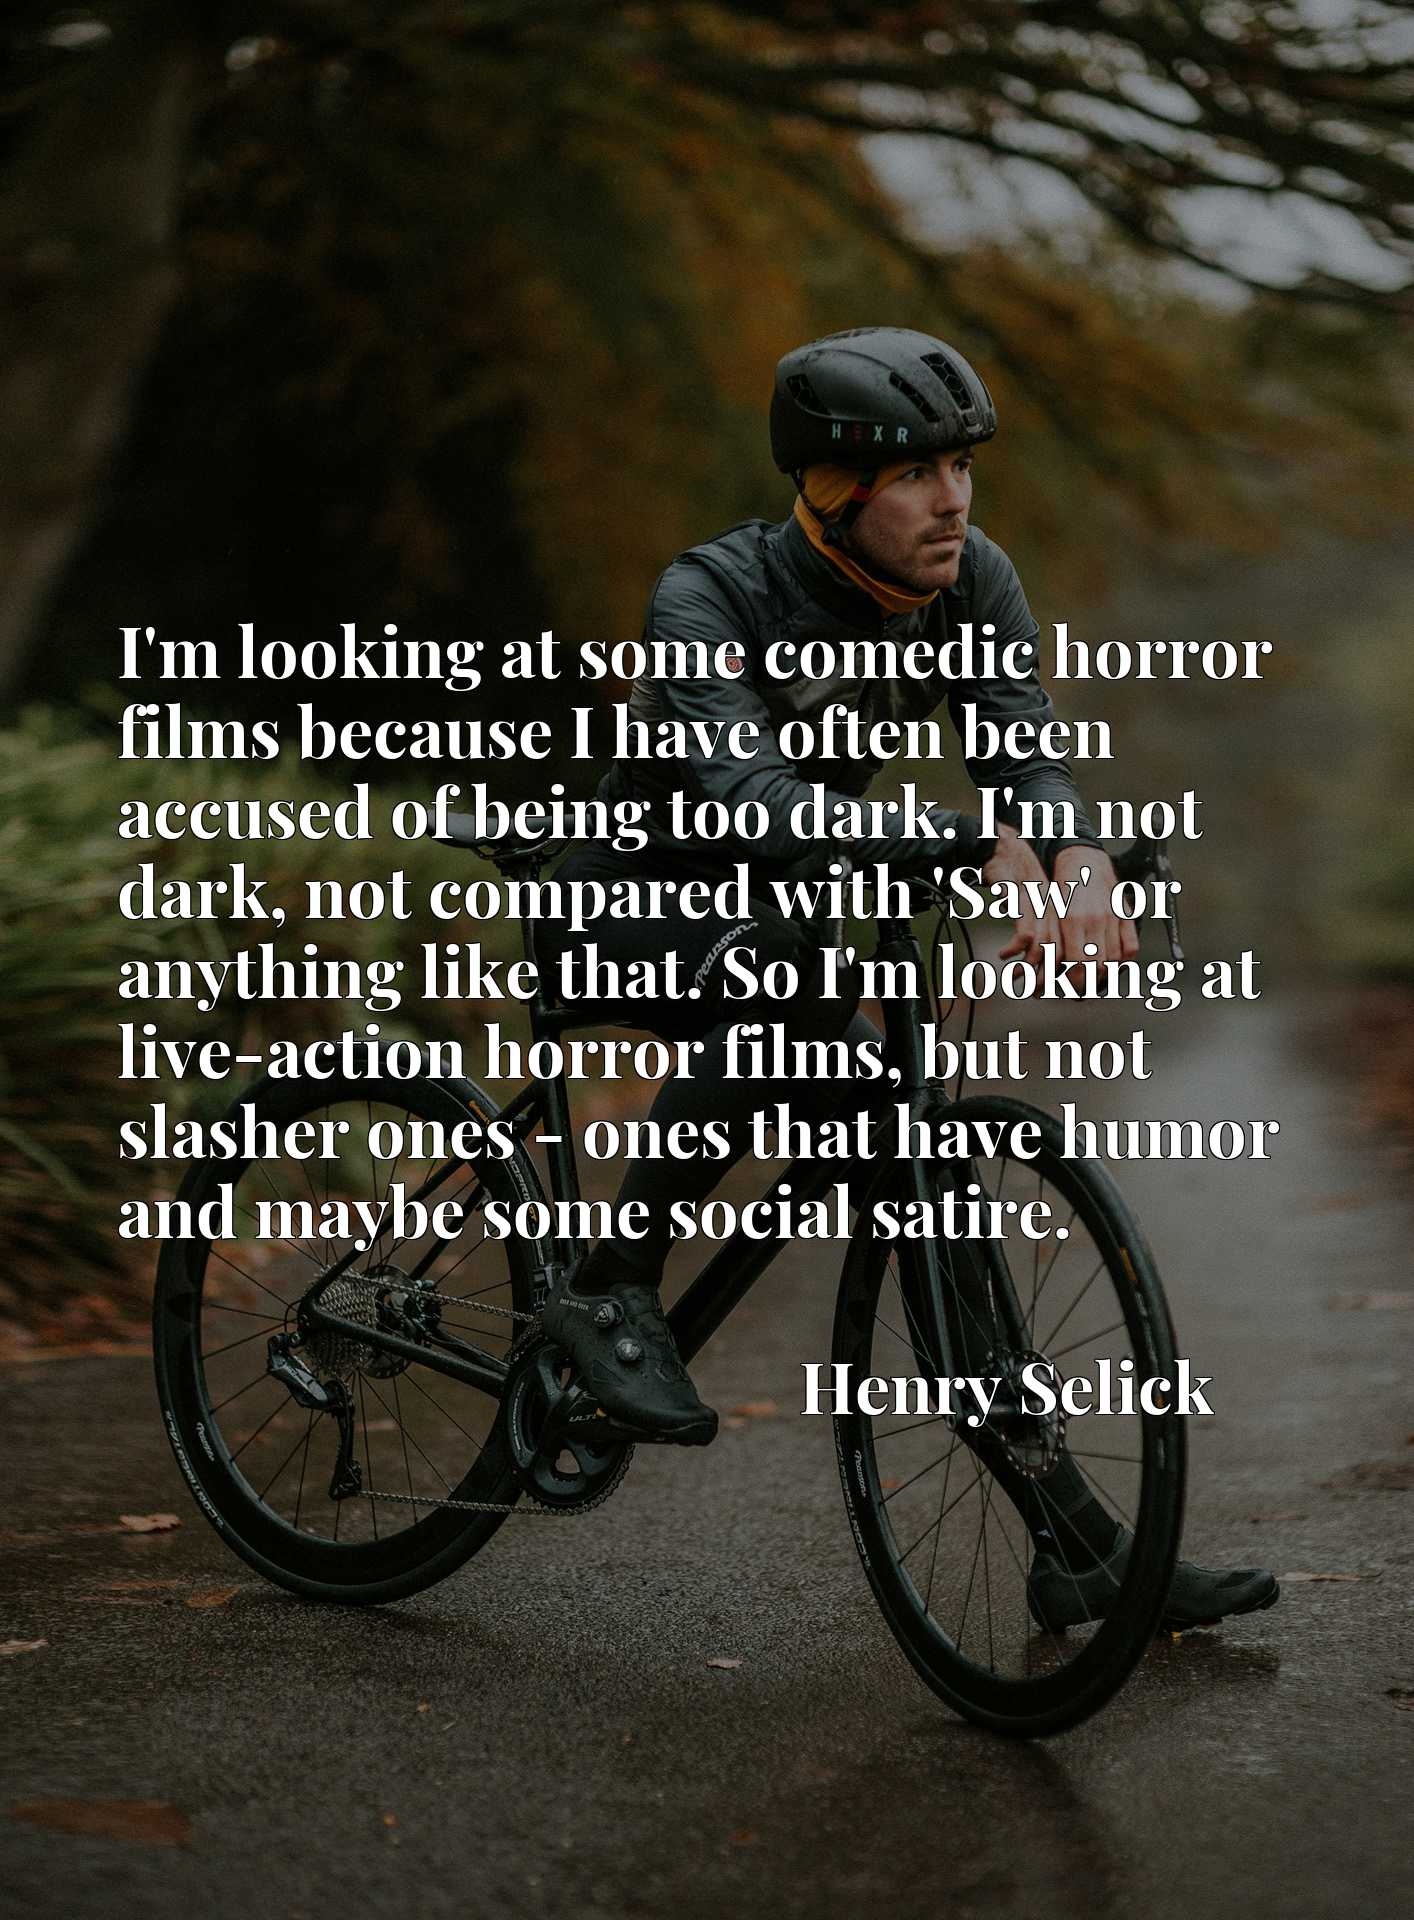 I'm looking at some comedic horror films because I have often been accused of being too dark. I'm not dark, not compared with 'Saw' or anything like that. So I'm looking at live-action horror films, but not slasher ones - ones that have humor and maybe some social satire.